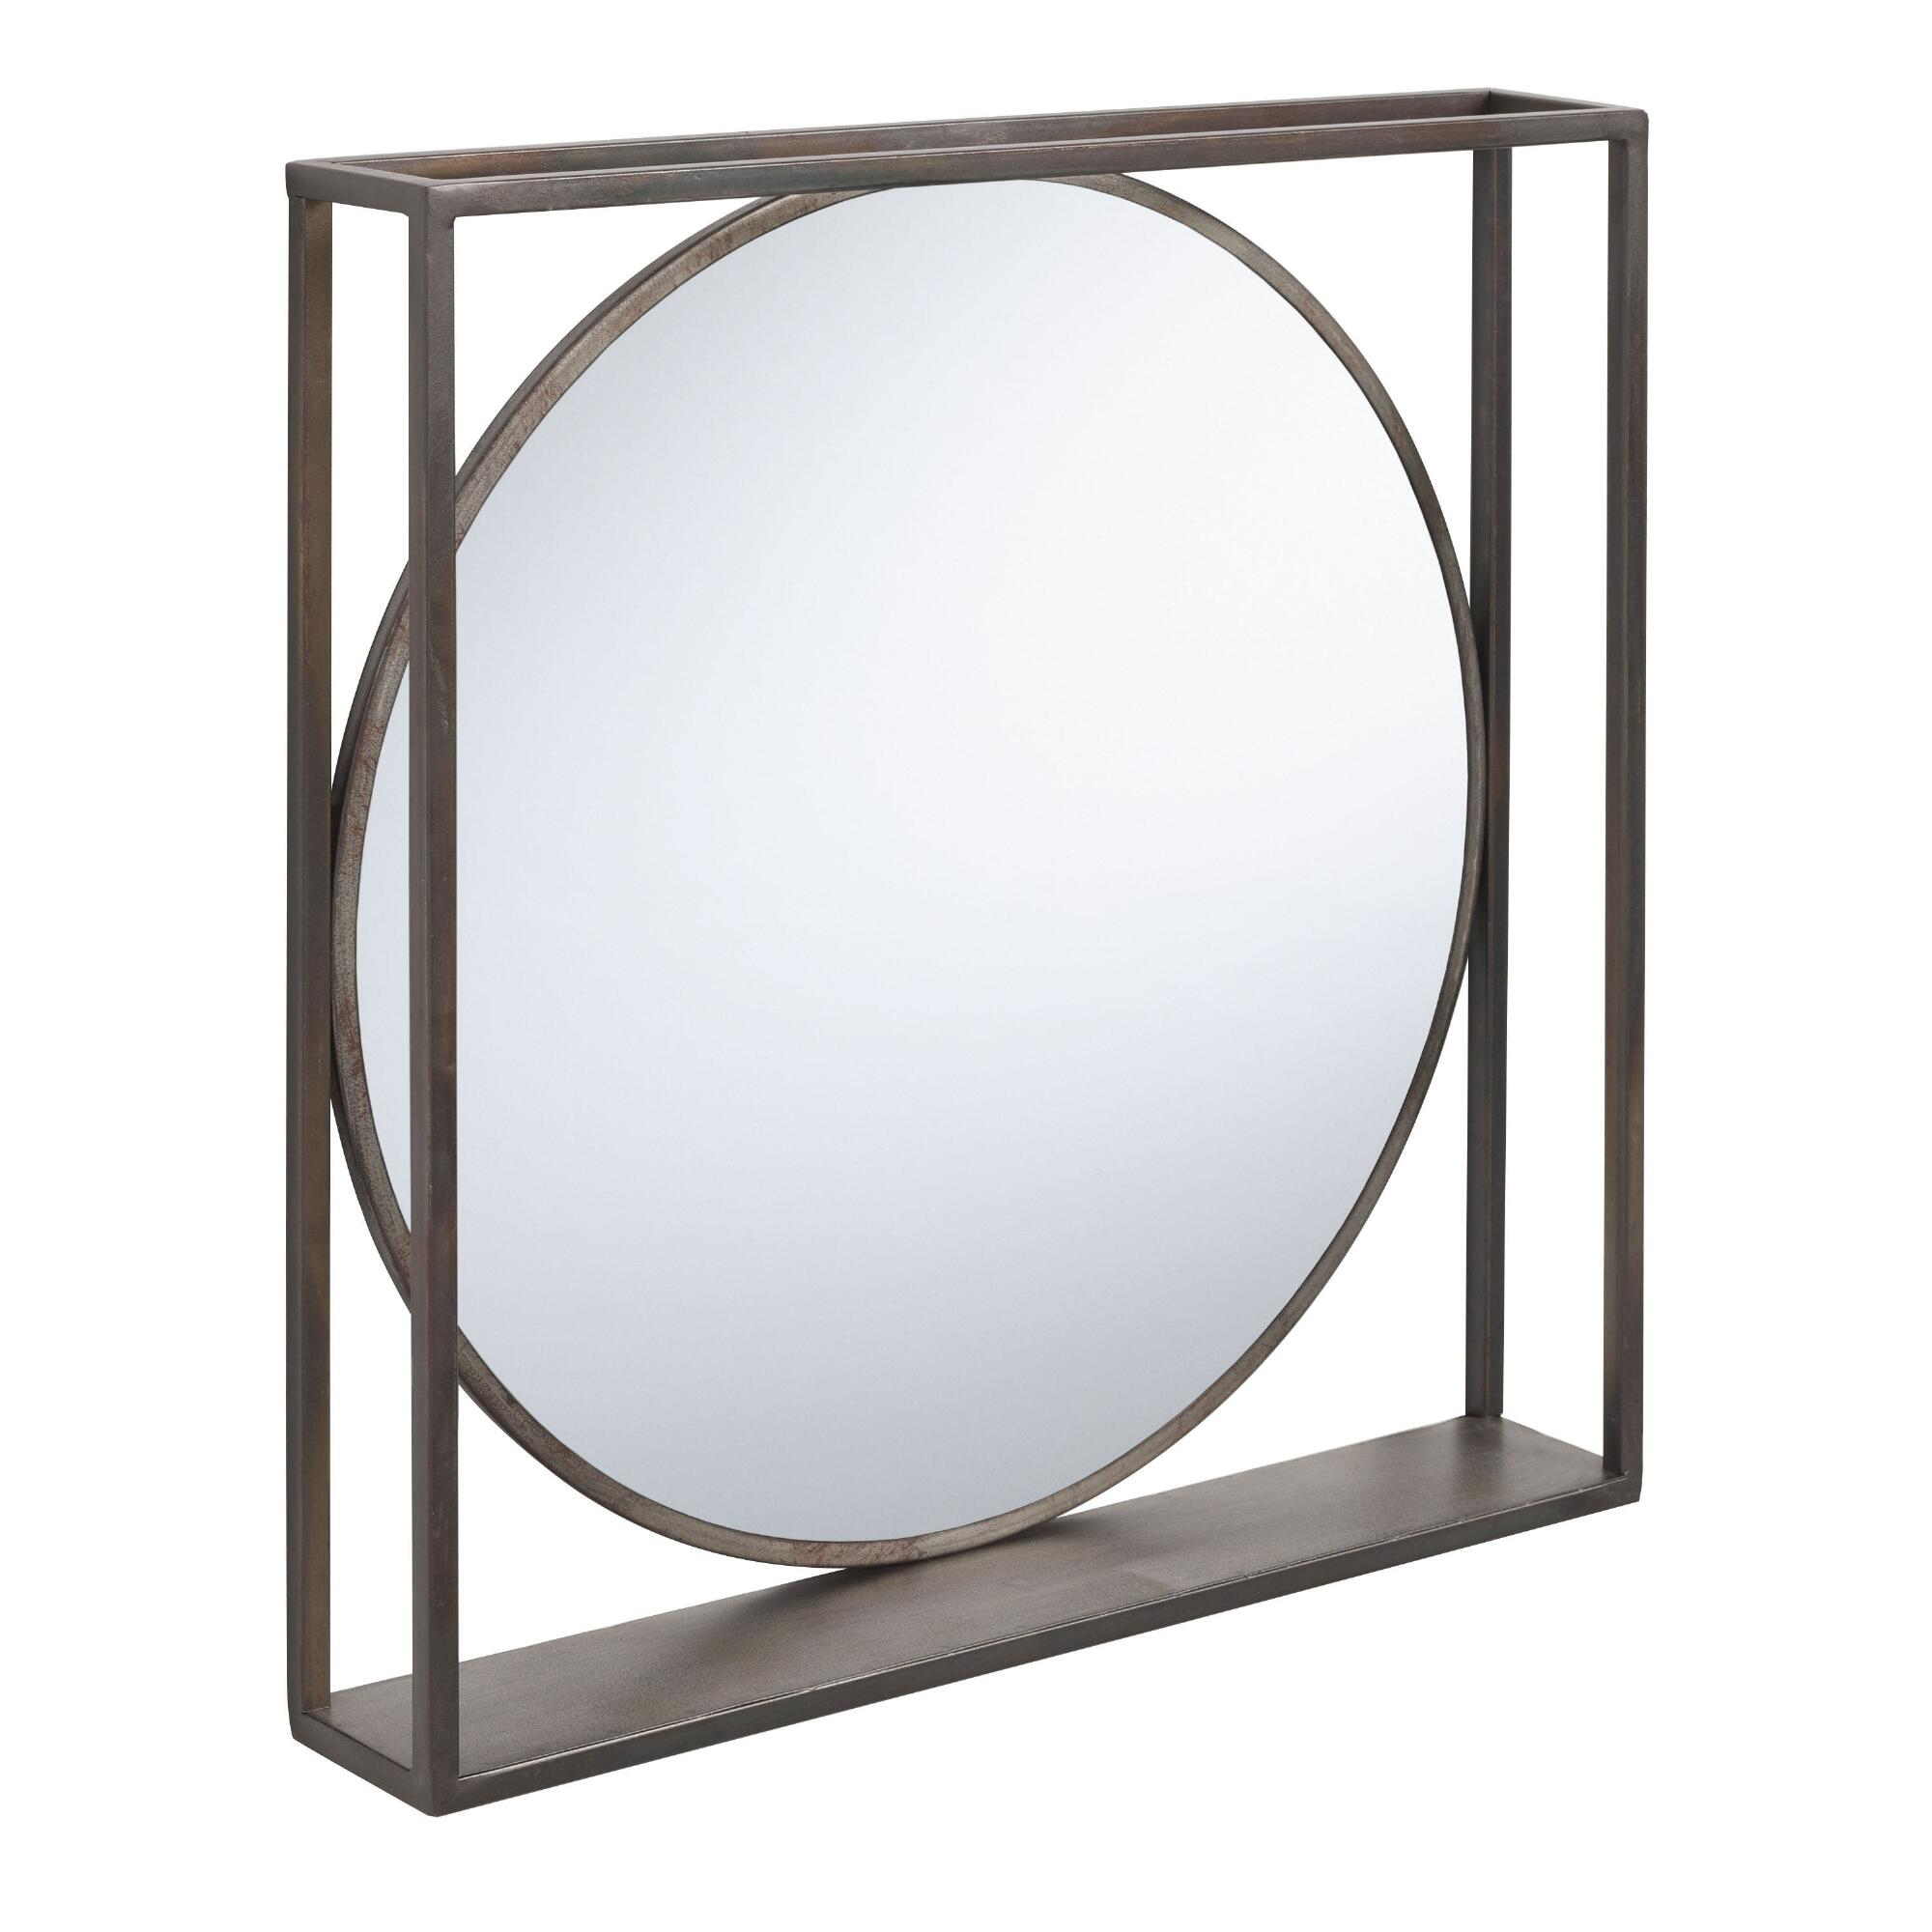 Distressed Black Framed Mirror With Shelfworld Market Within Peetz Modern Rustic Accent Mirrors (Photo 27 of 30)